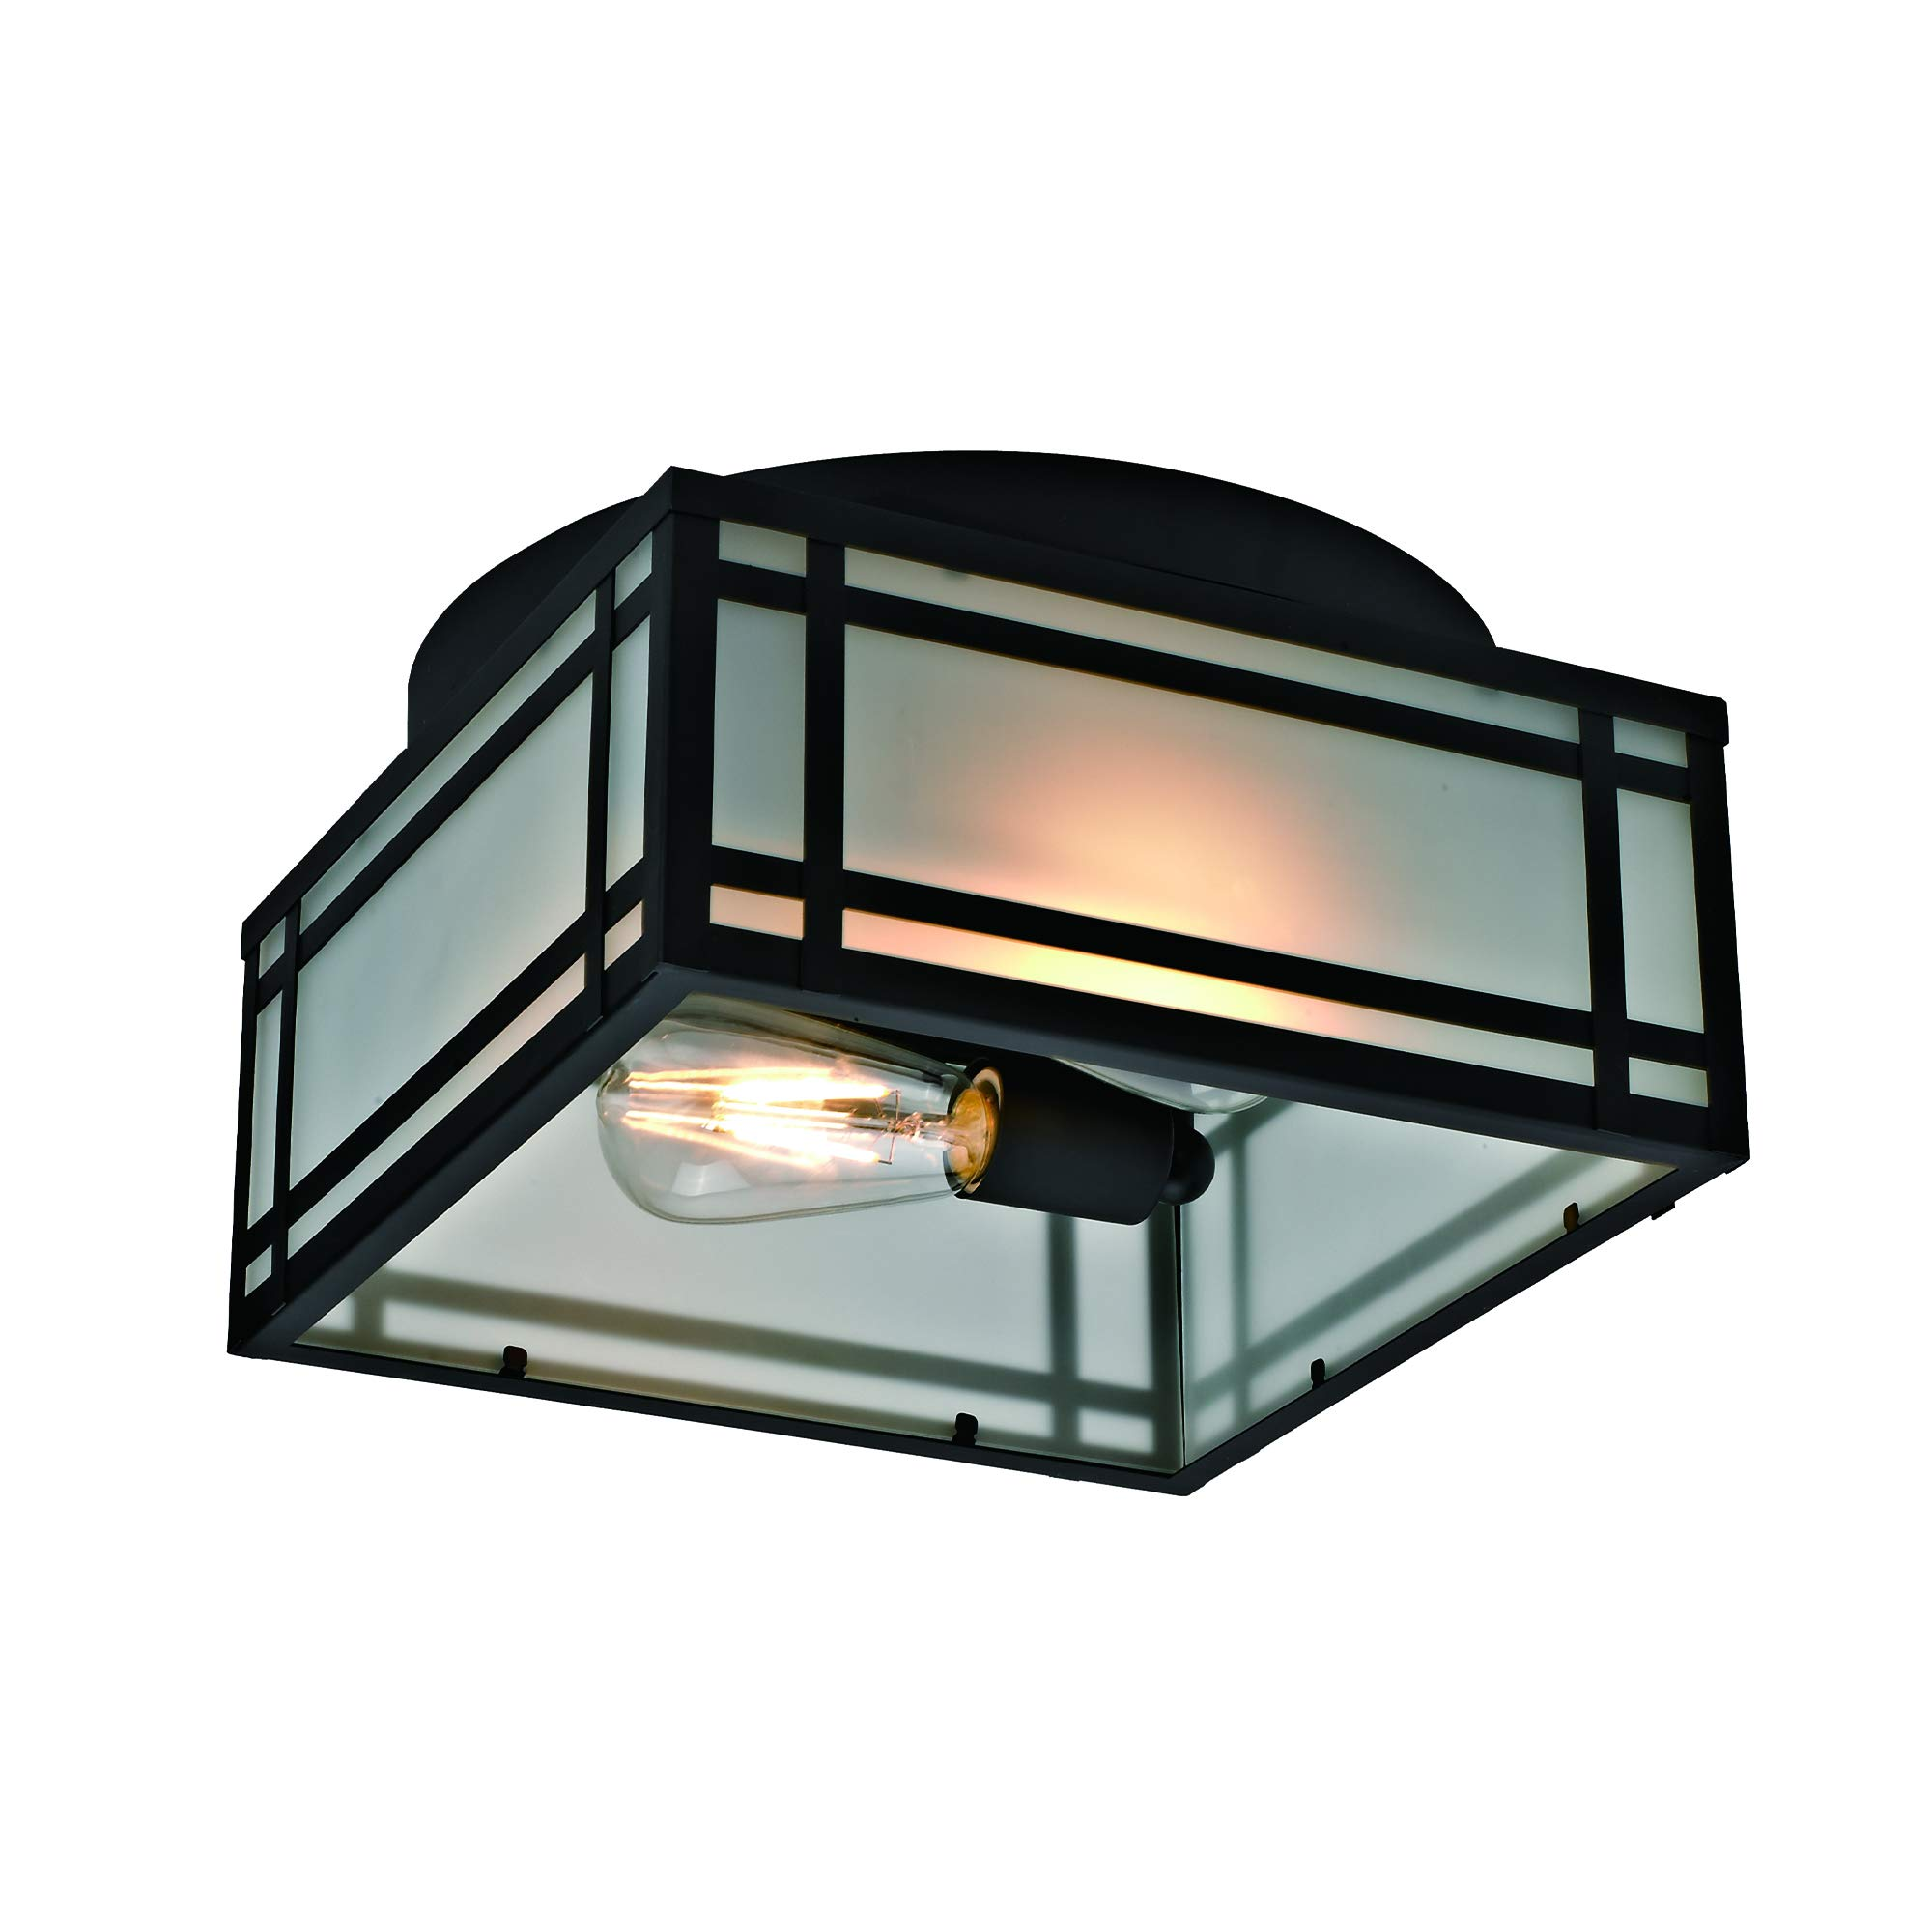 Addington Park 31748 Yorkshire Collection 2-Light Mission-Style Outdoor Flush Mount with Frosted Glass, Black